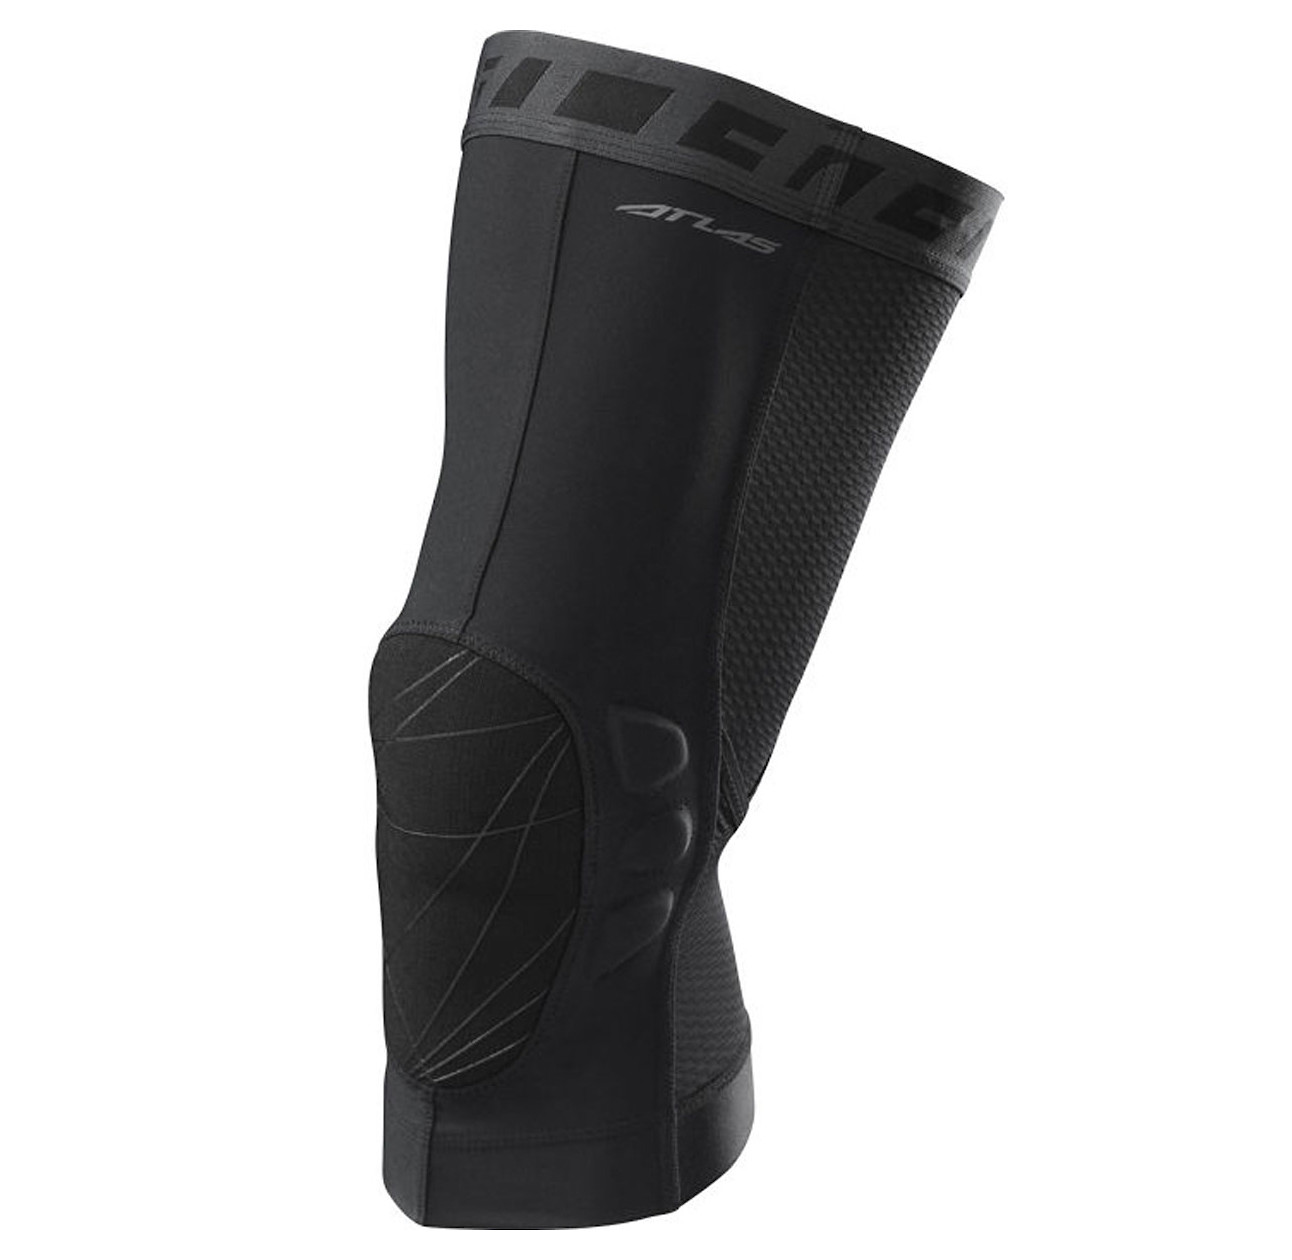 Specialized Atlas Knee Pads